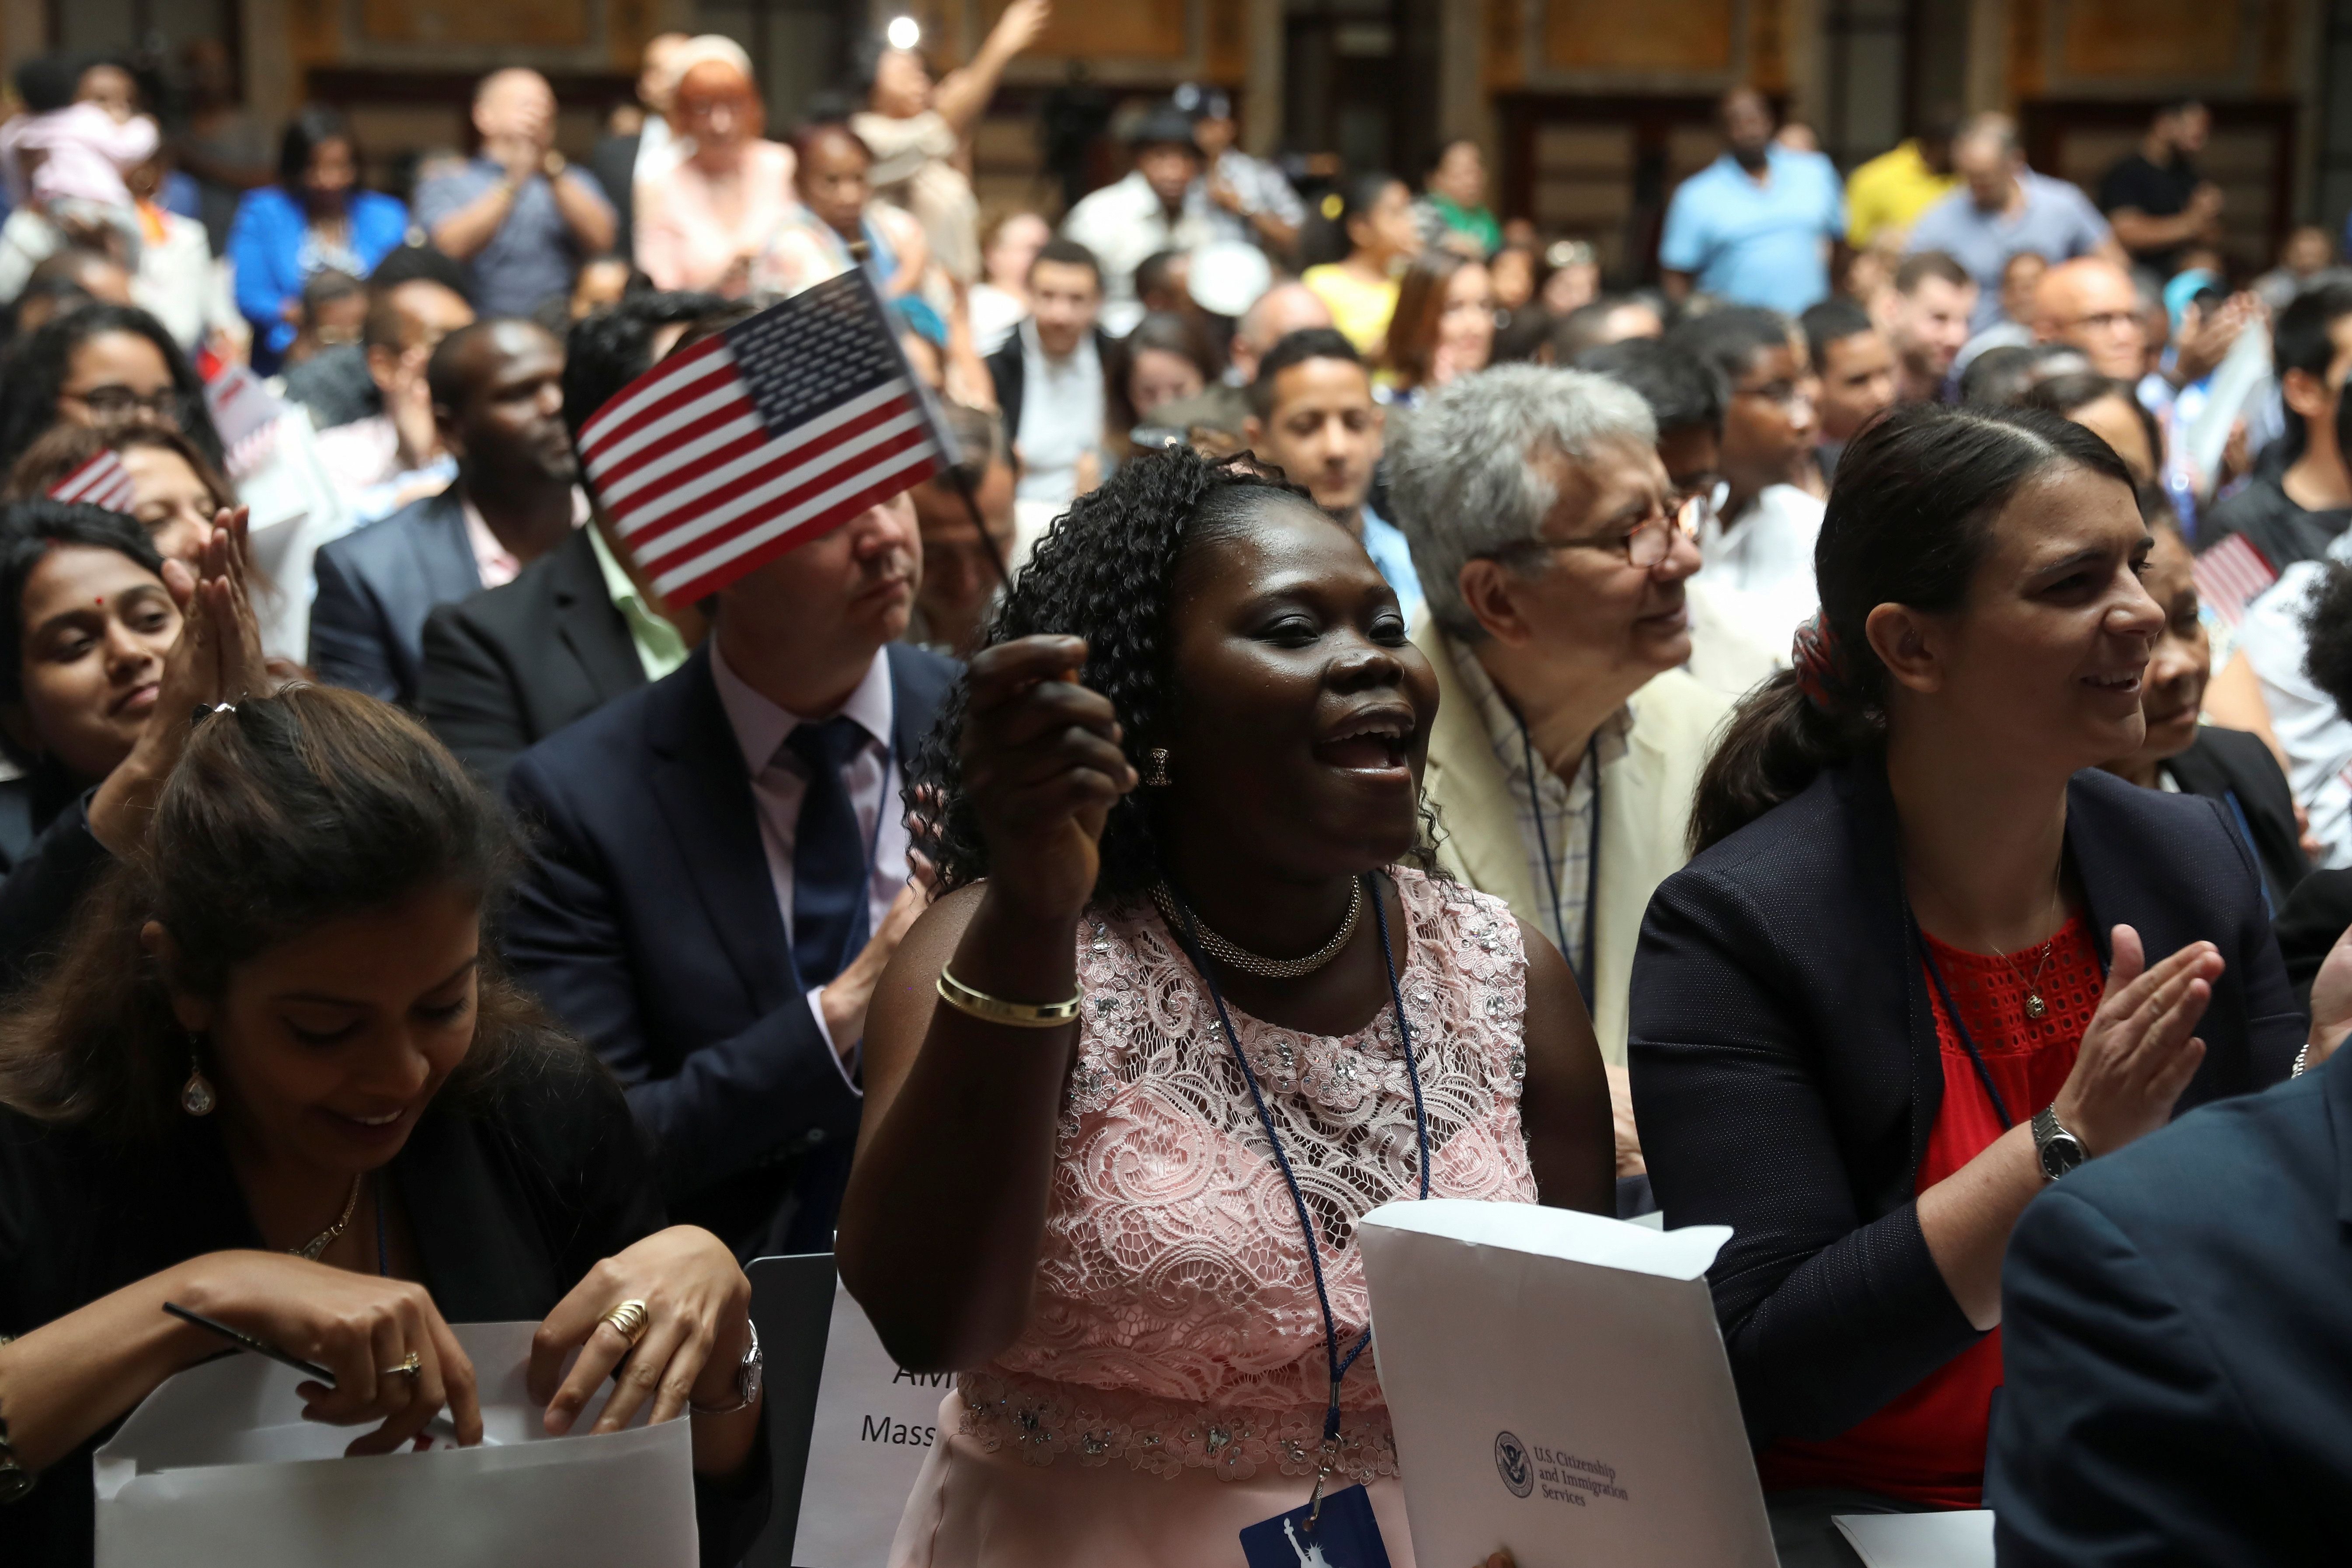 Immigrants smile after receiving their certificates of citizenship at a naturalization ceremony in the New York Public Librar